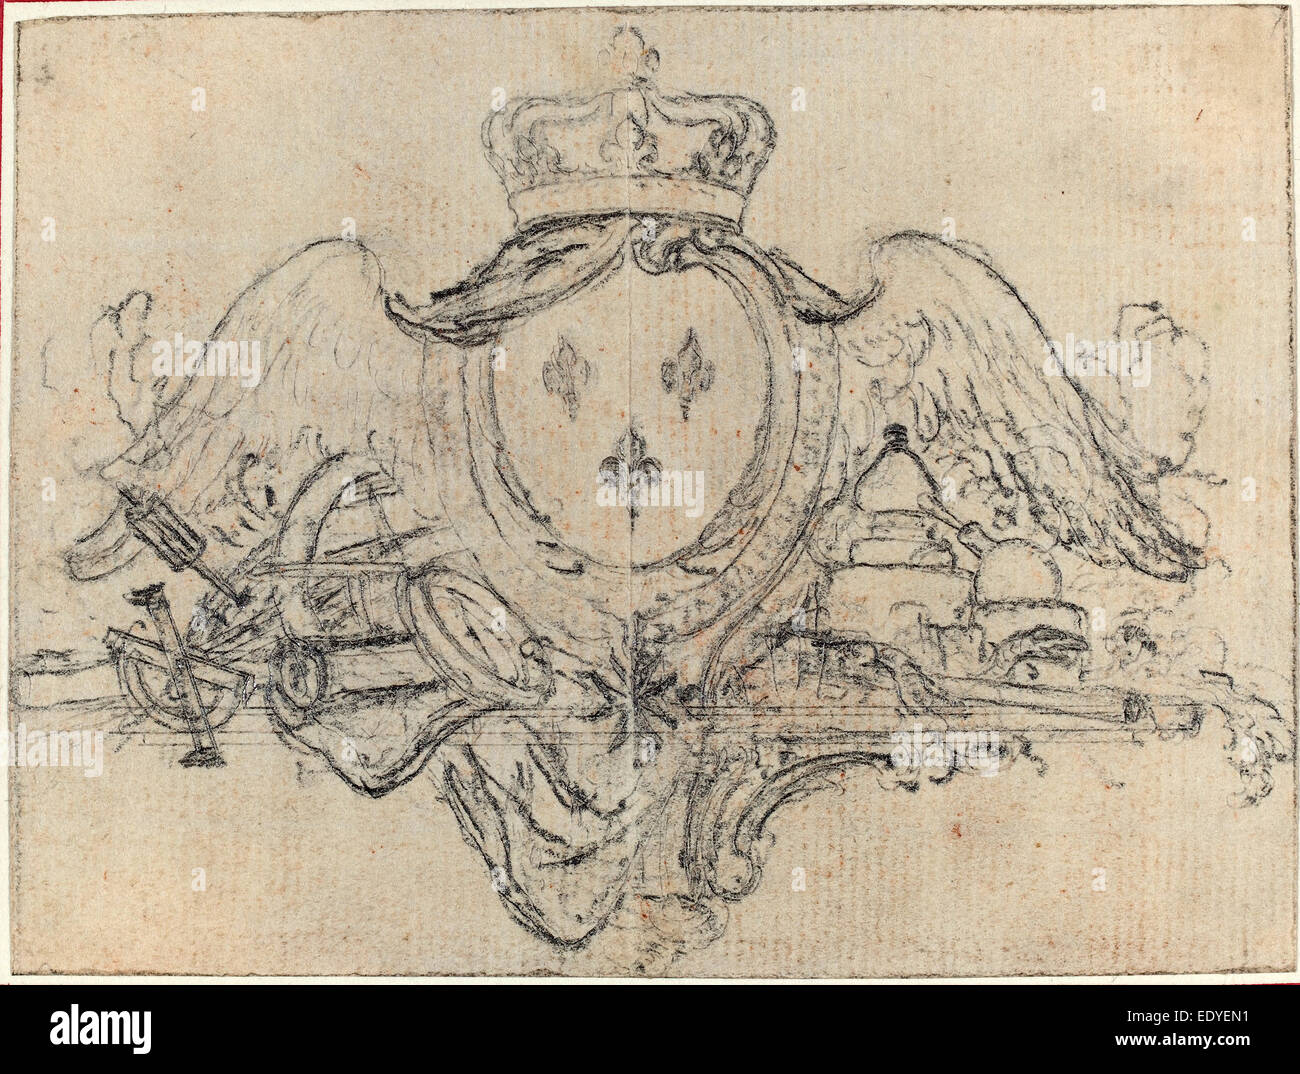 Hubert François Gravelot (French, 1699 - 1773), Arms of the King of France  with Wings and Scientific Instruments, graphite